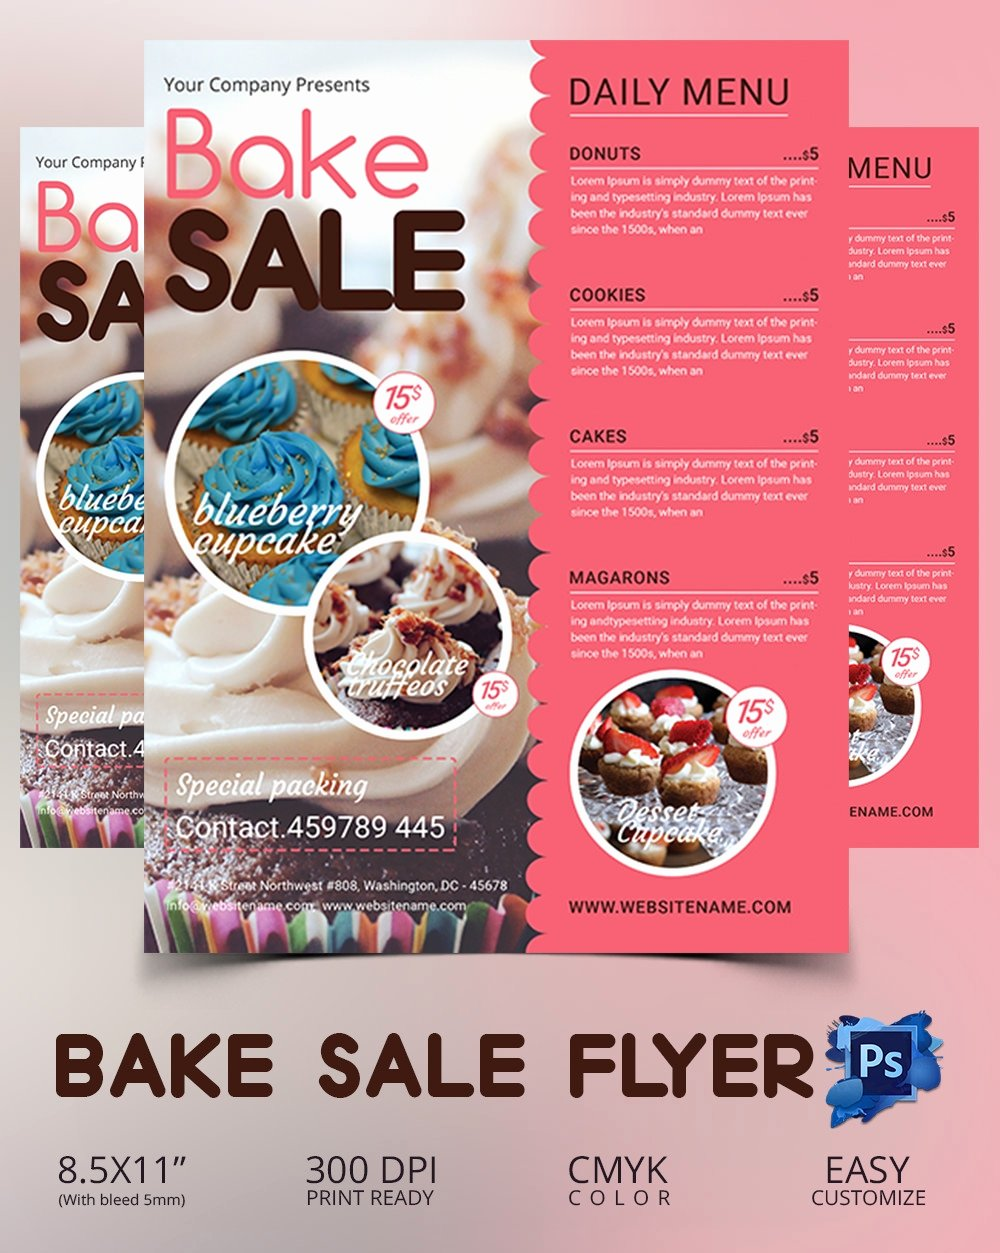 Bake Sale Flyers Templates Free Inspirational Bake Sale Flyer Template 34 Free Psd Indesign Ai